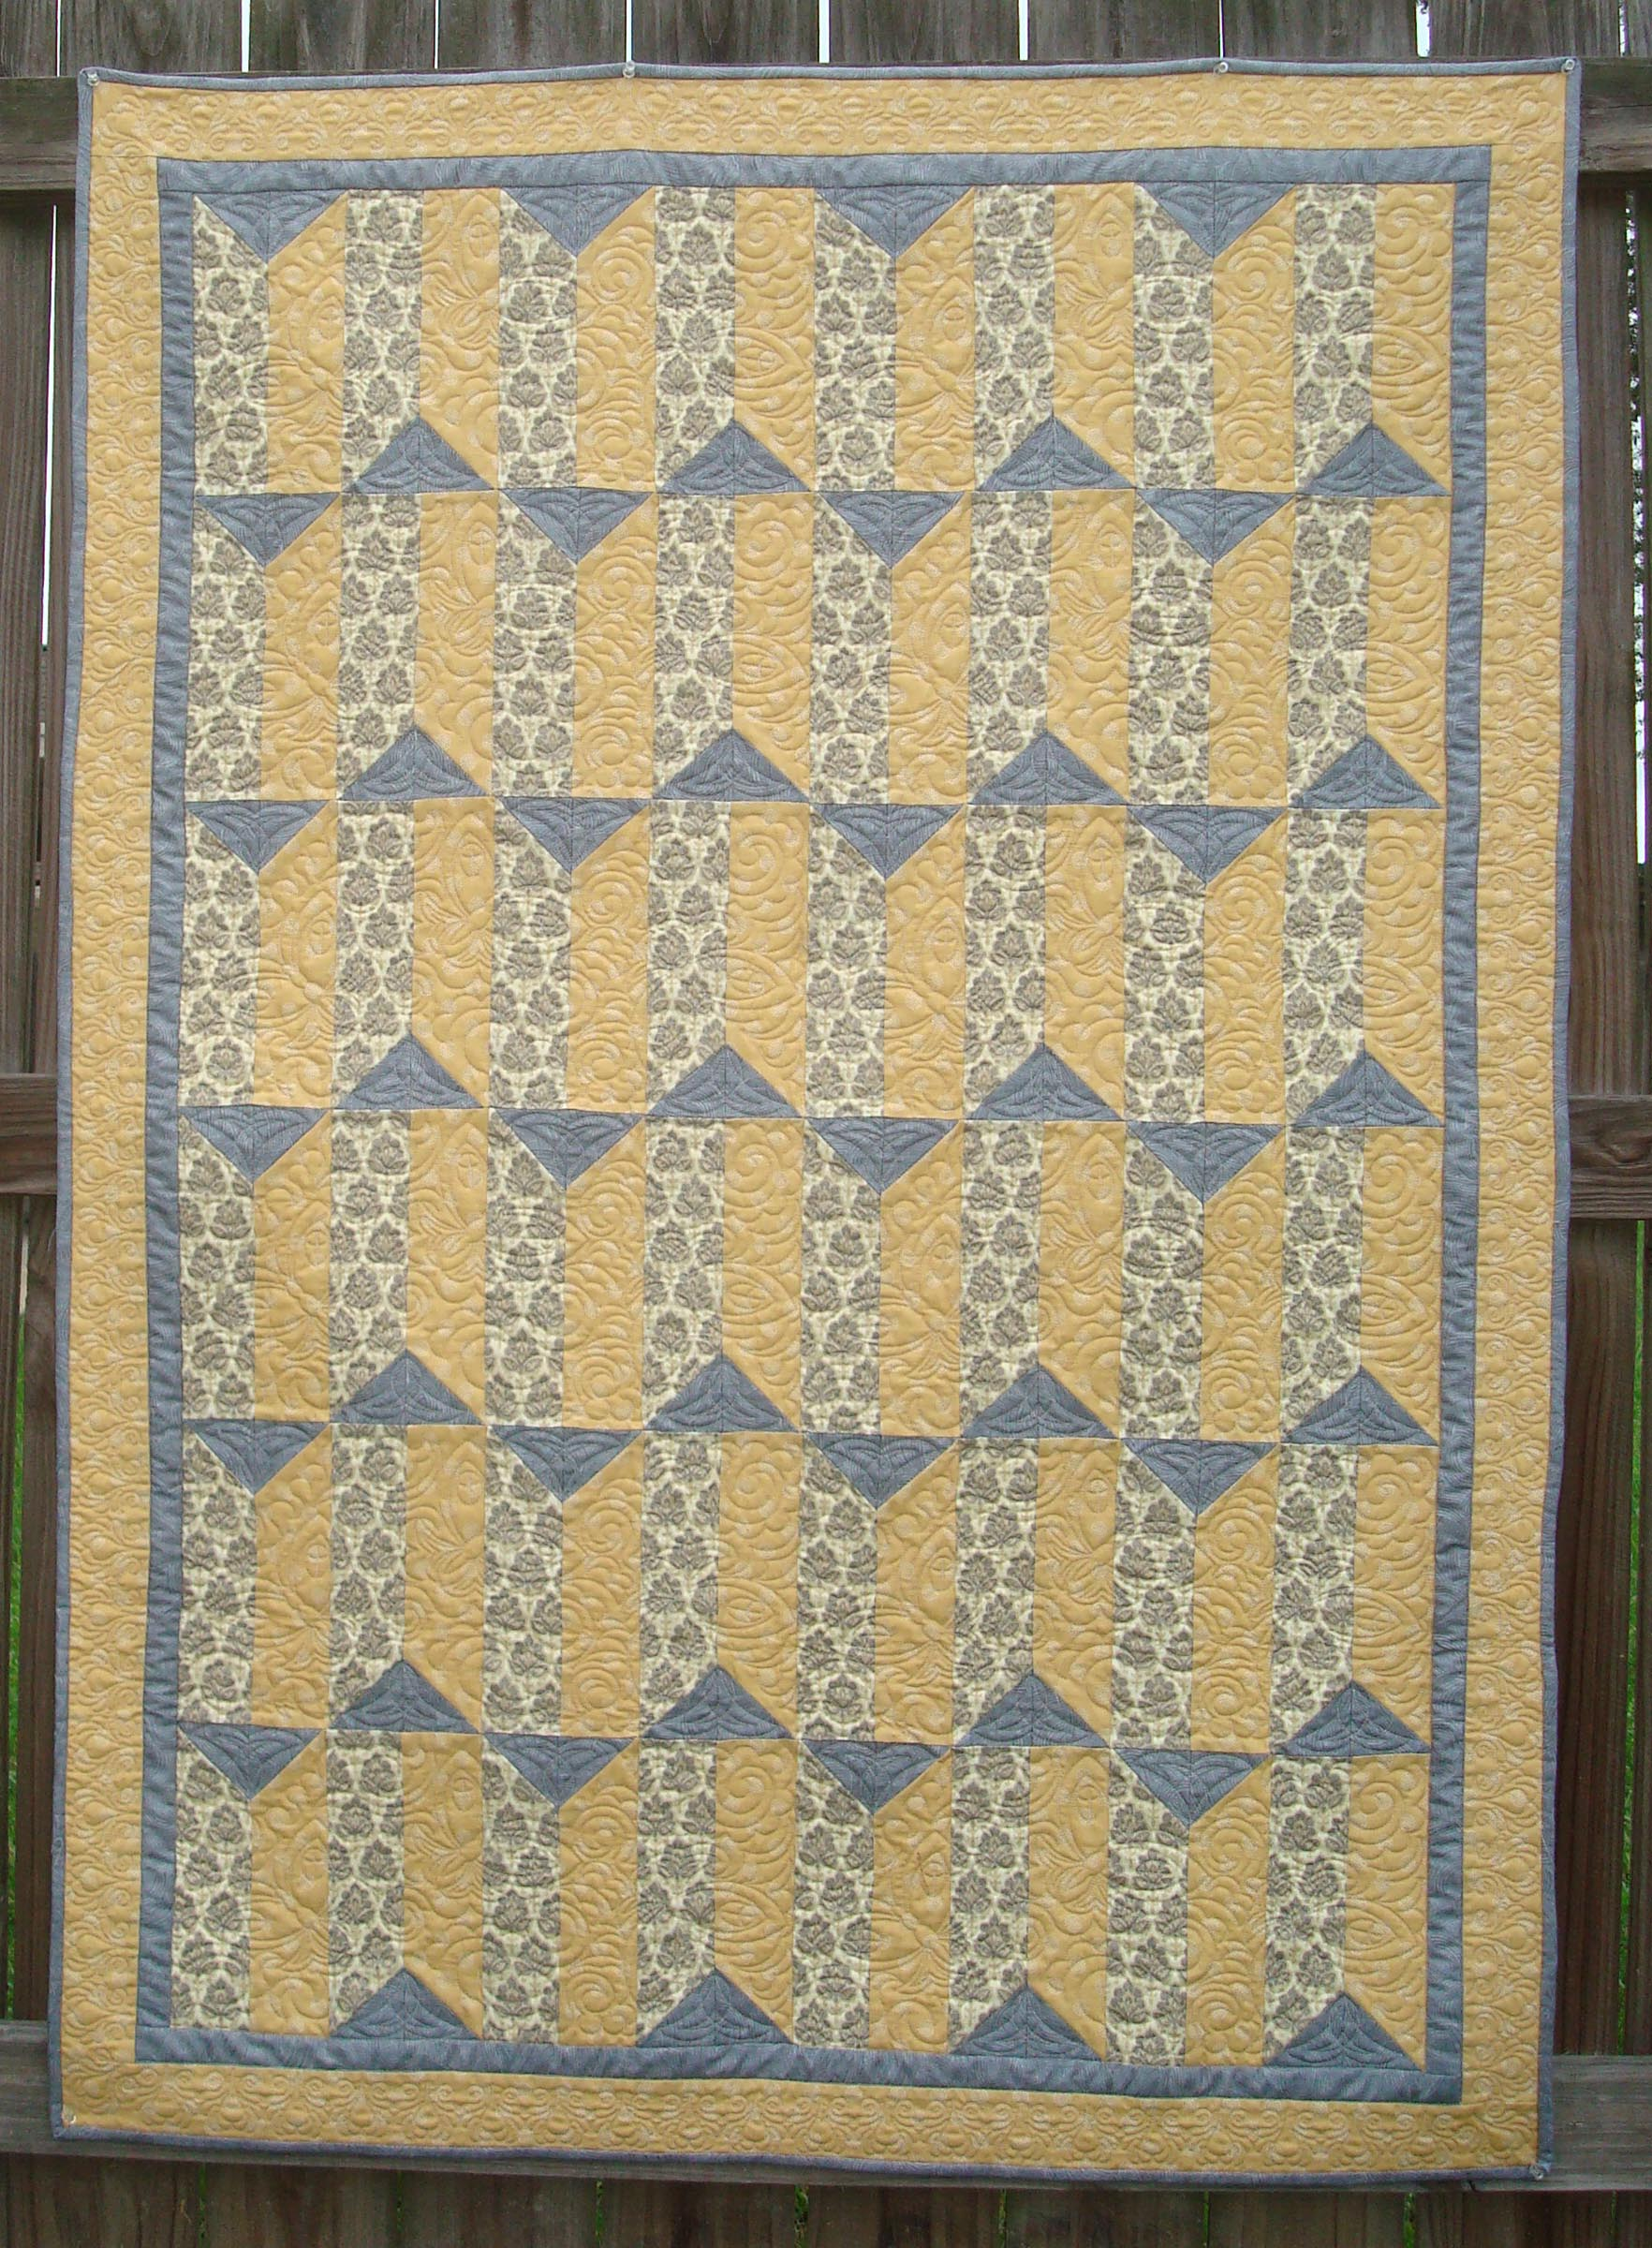 #147 Tufted Tiles